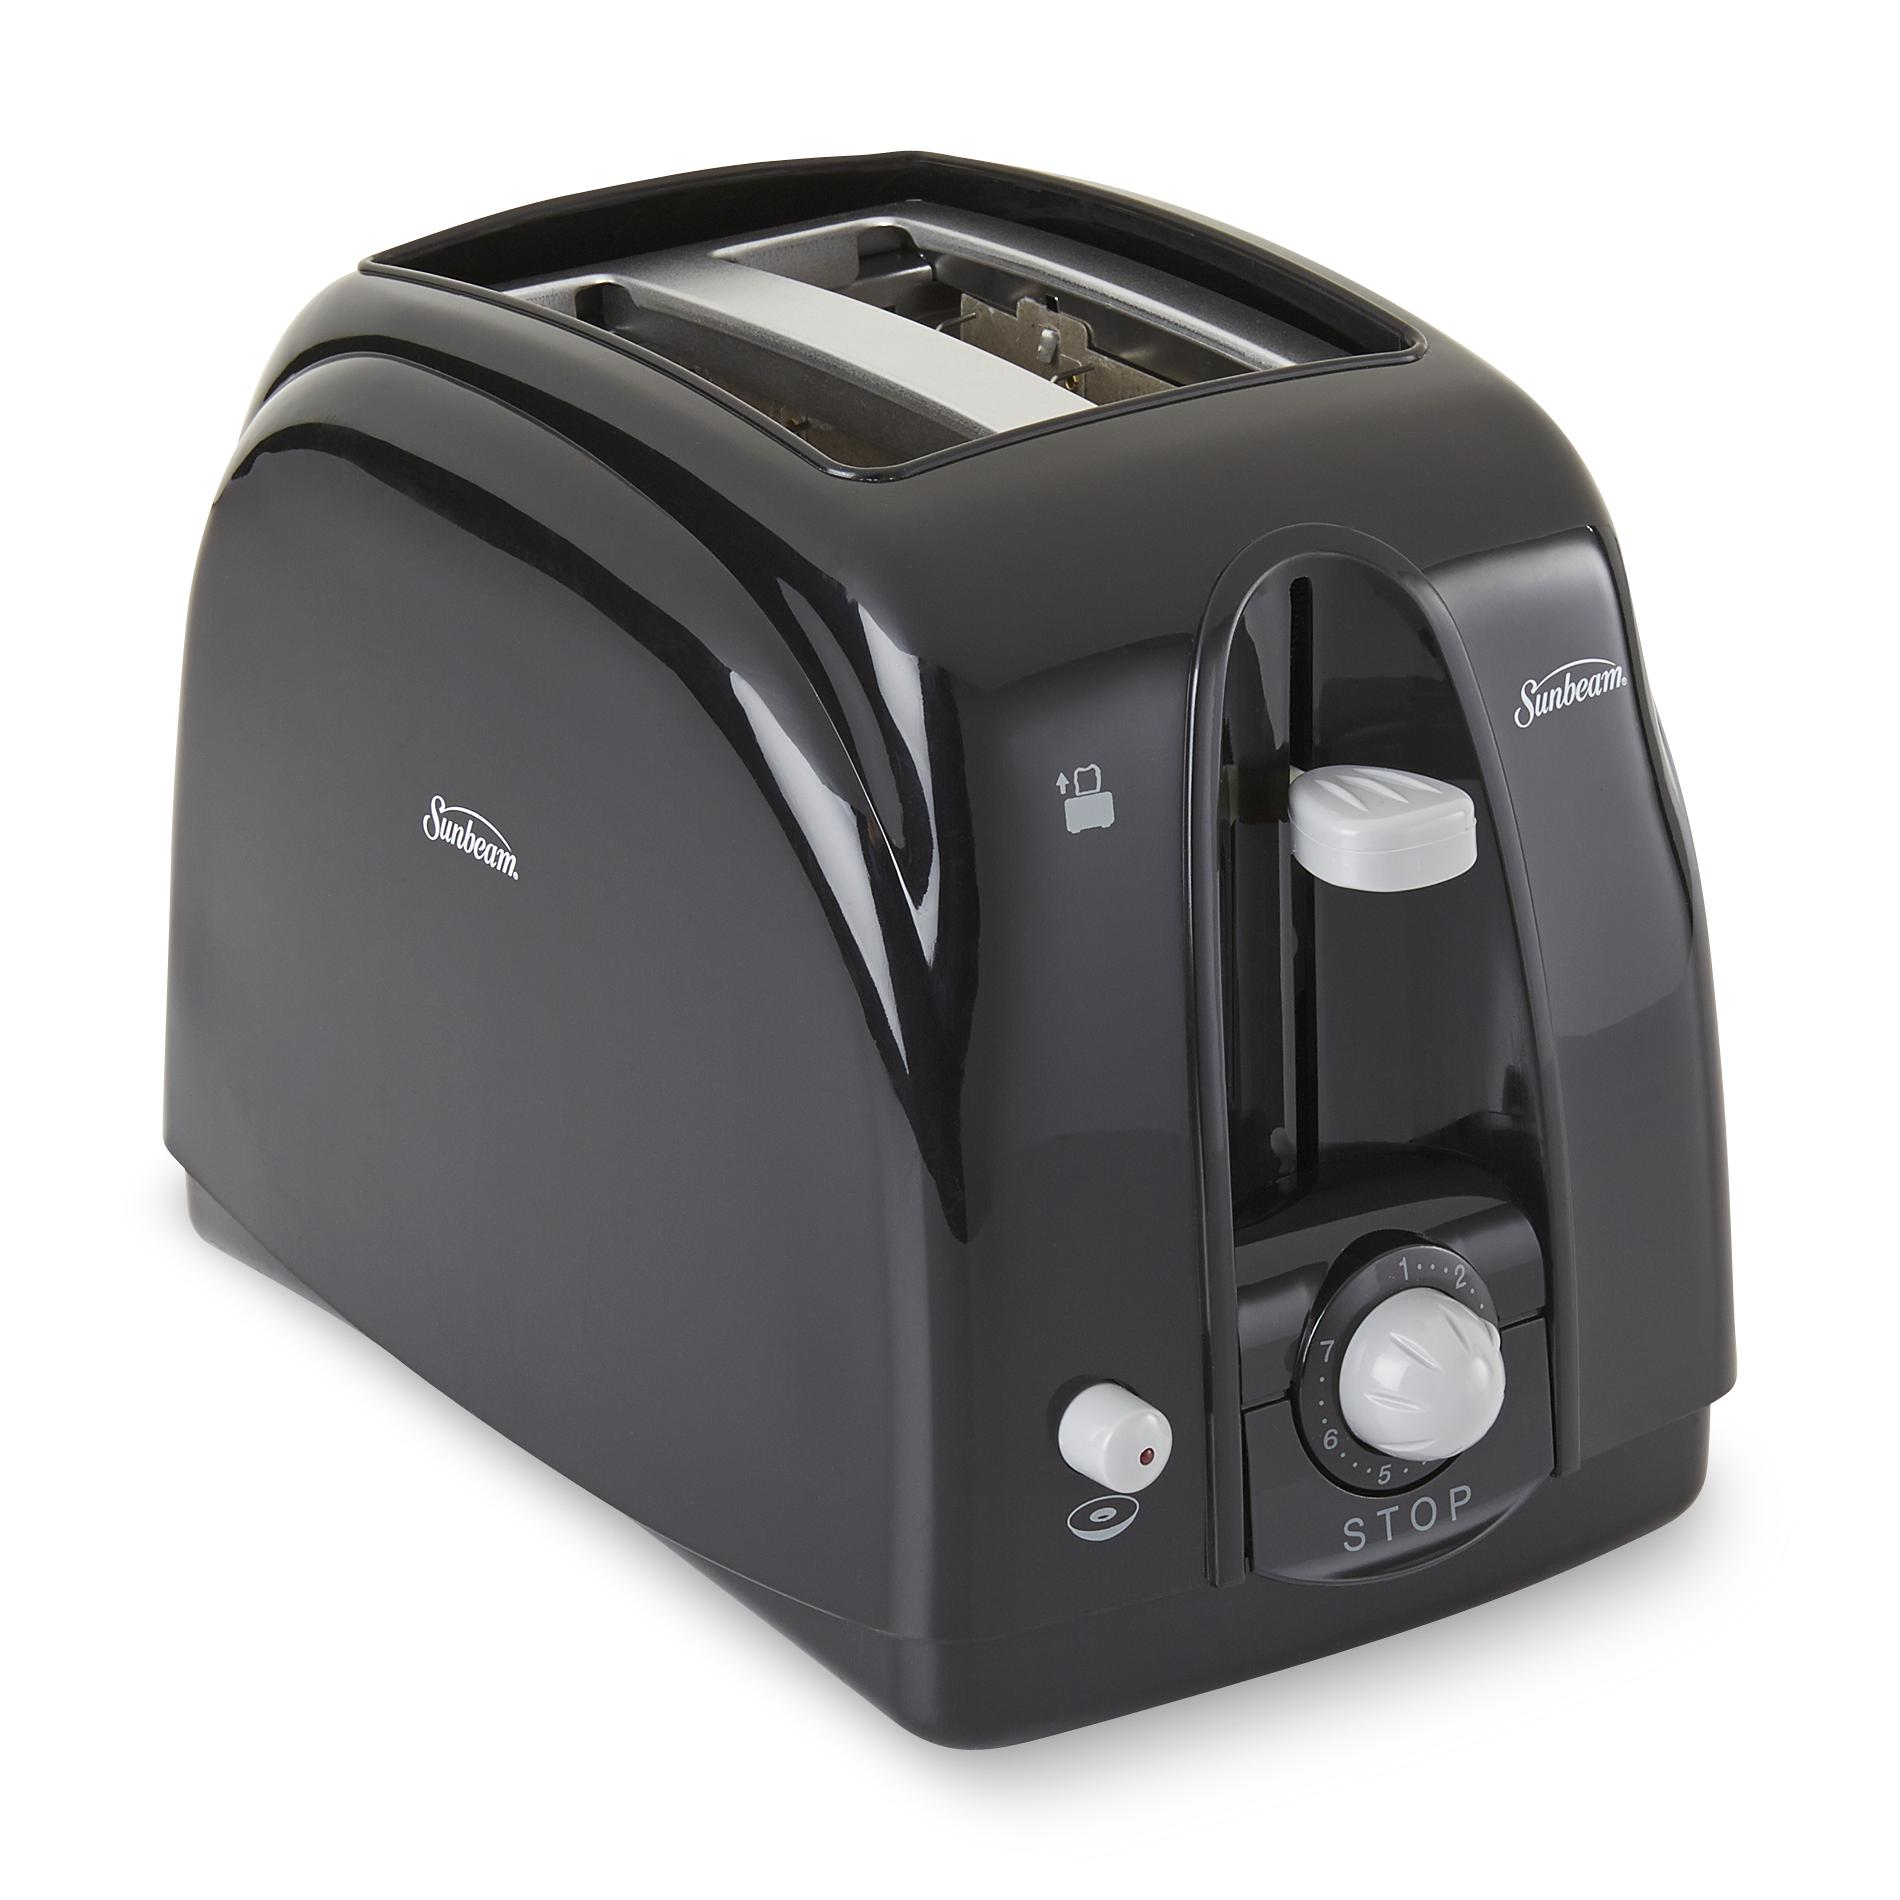 toasters number of slices 2 sears rh sears com Cuisinart Toaster Oven Air Fryer Cuisinart Toaster Oven